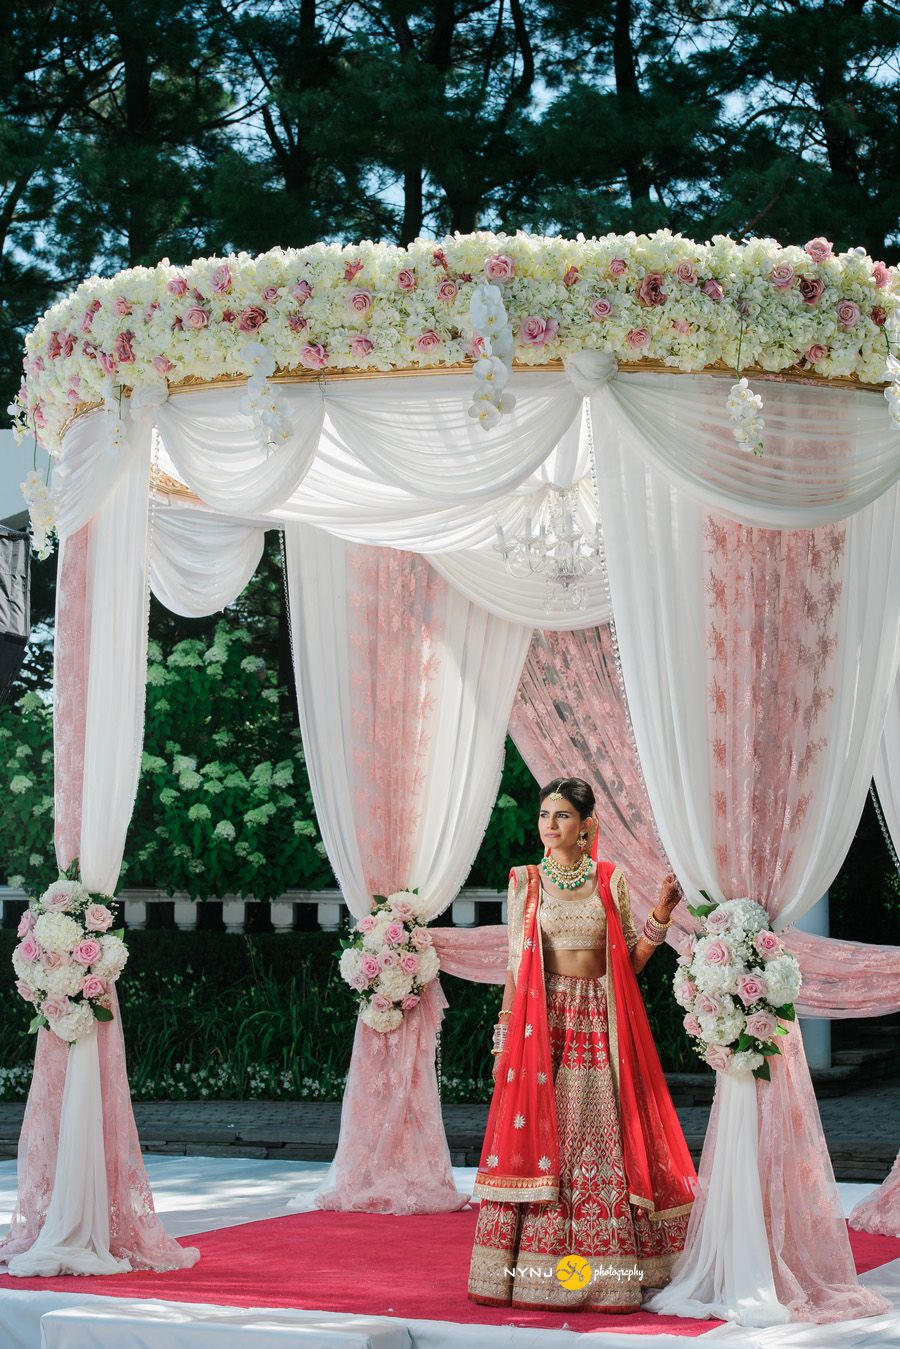 Indian Wedding In Addison Park Nj Indian Wedding Decorations Wedding Design Decoration Wedding Stage Decorations